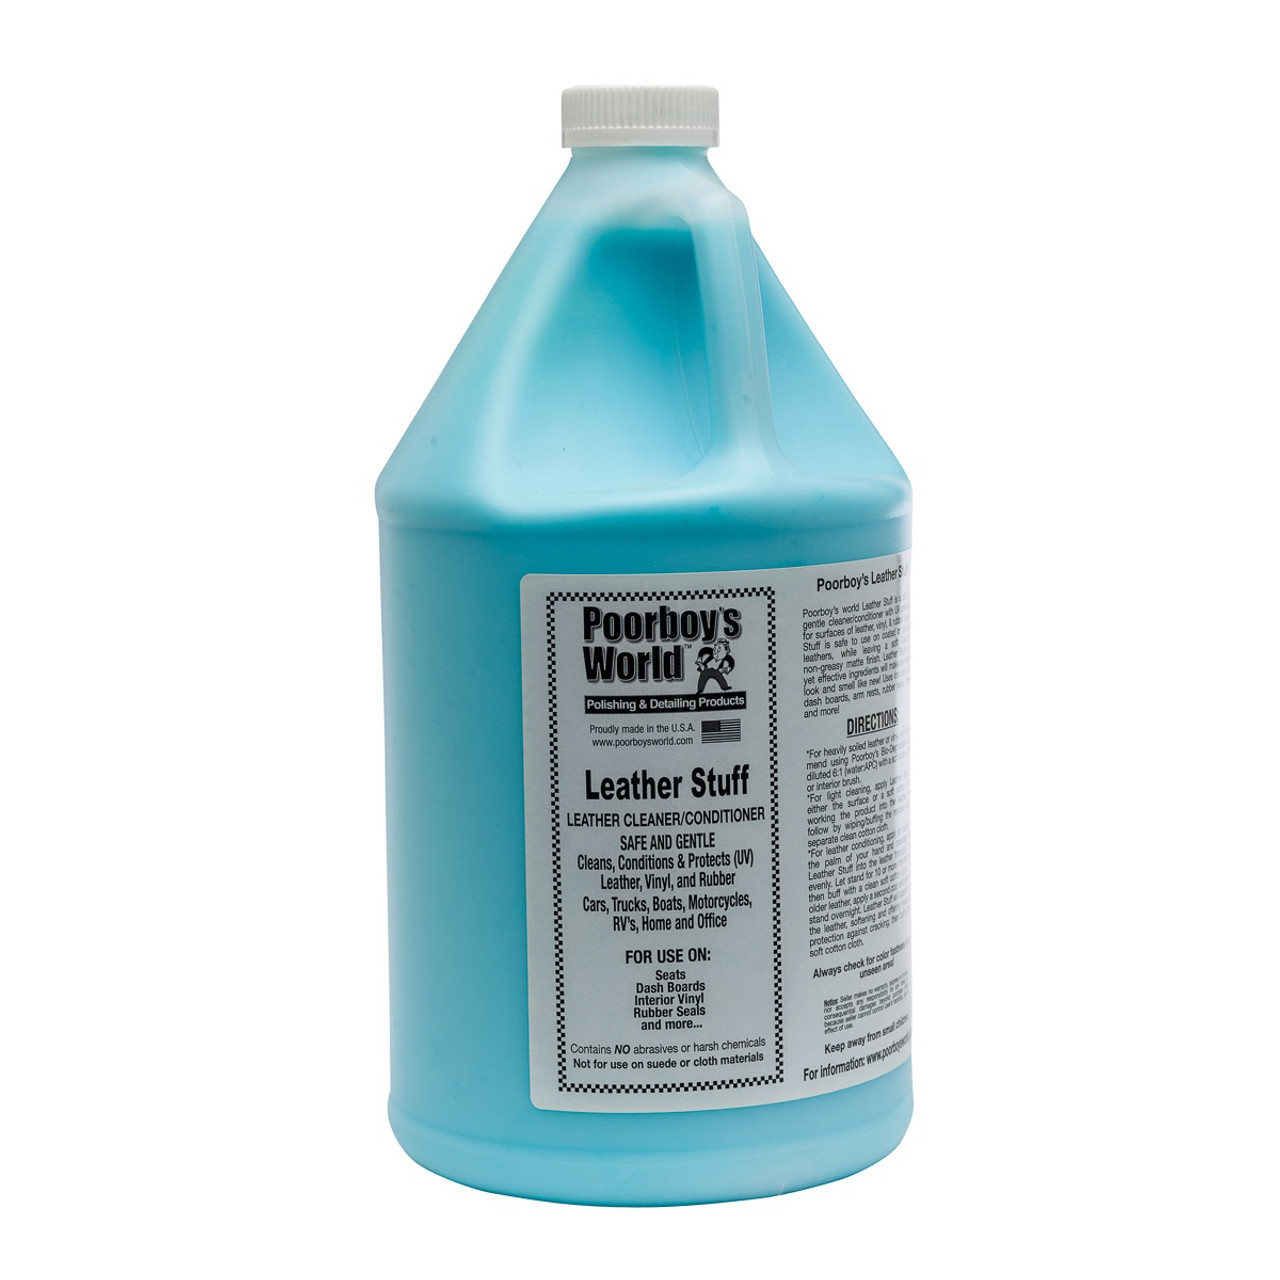 Poorboy's World Leather Stuff Gallon